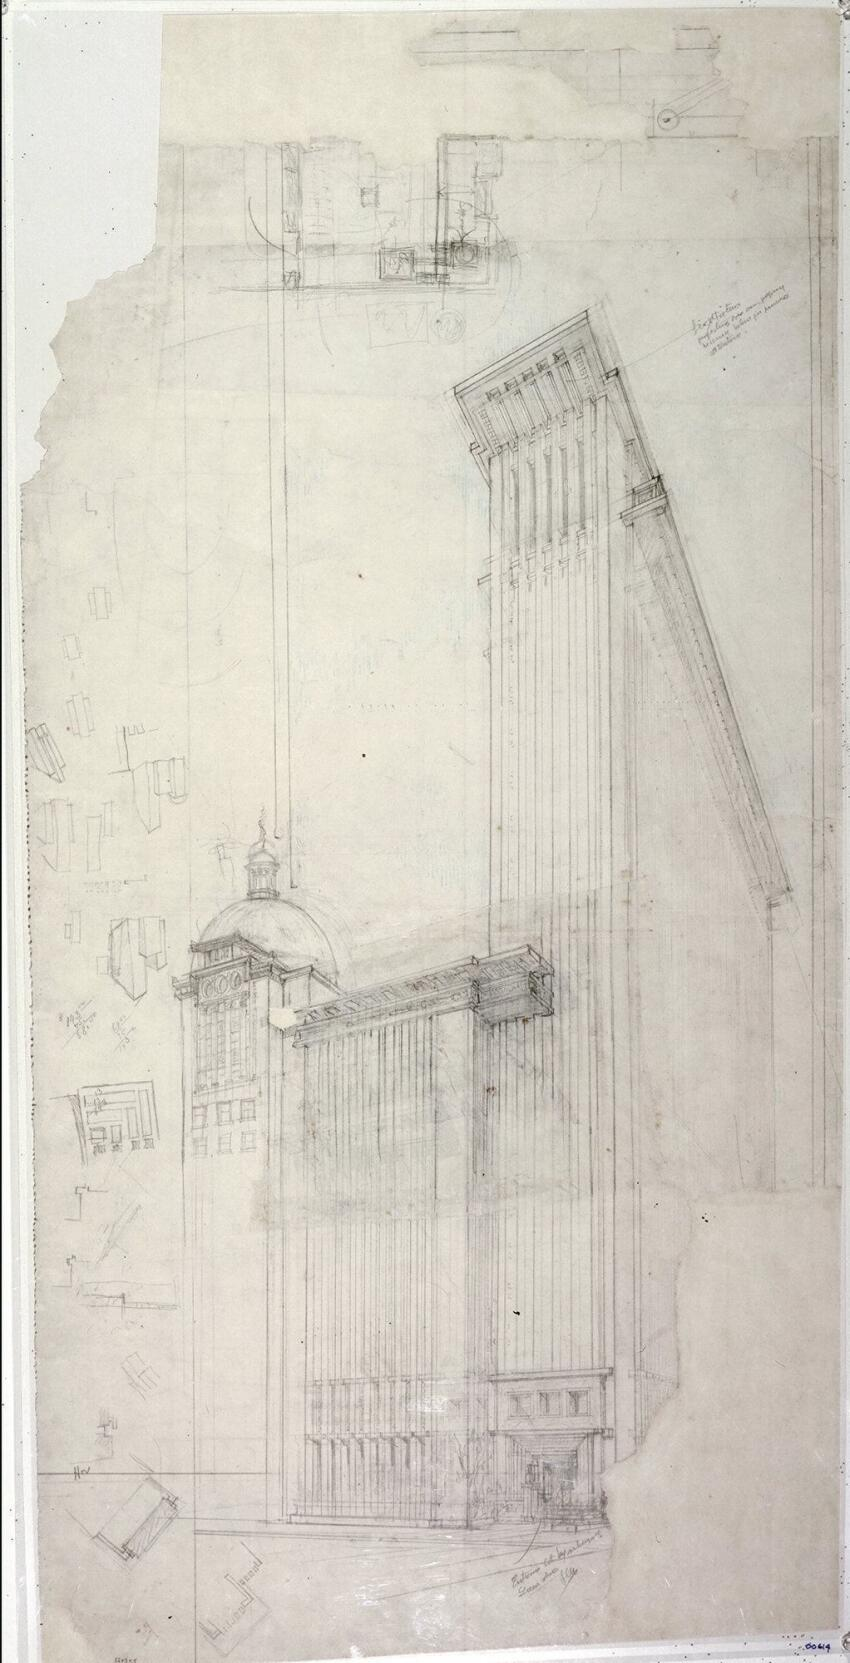 Perspective of the San Francisco Call Building (1912).